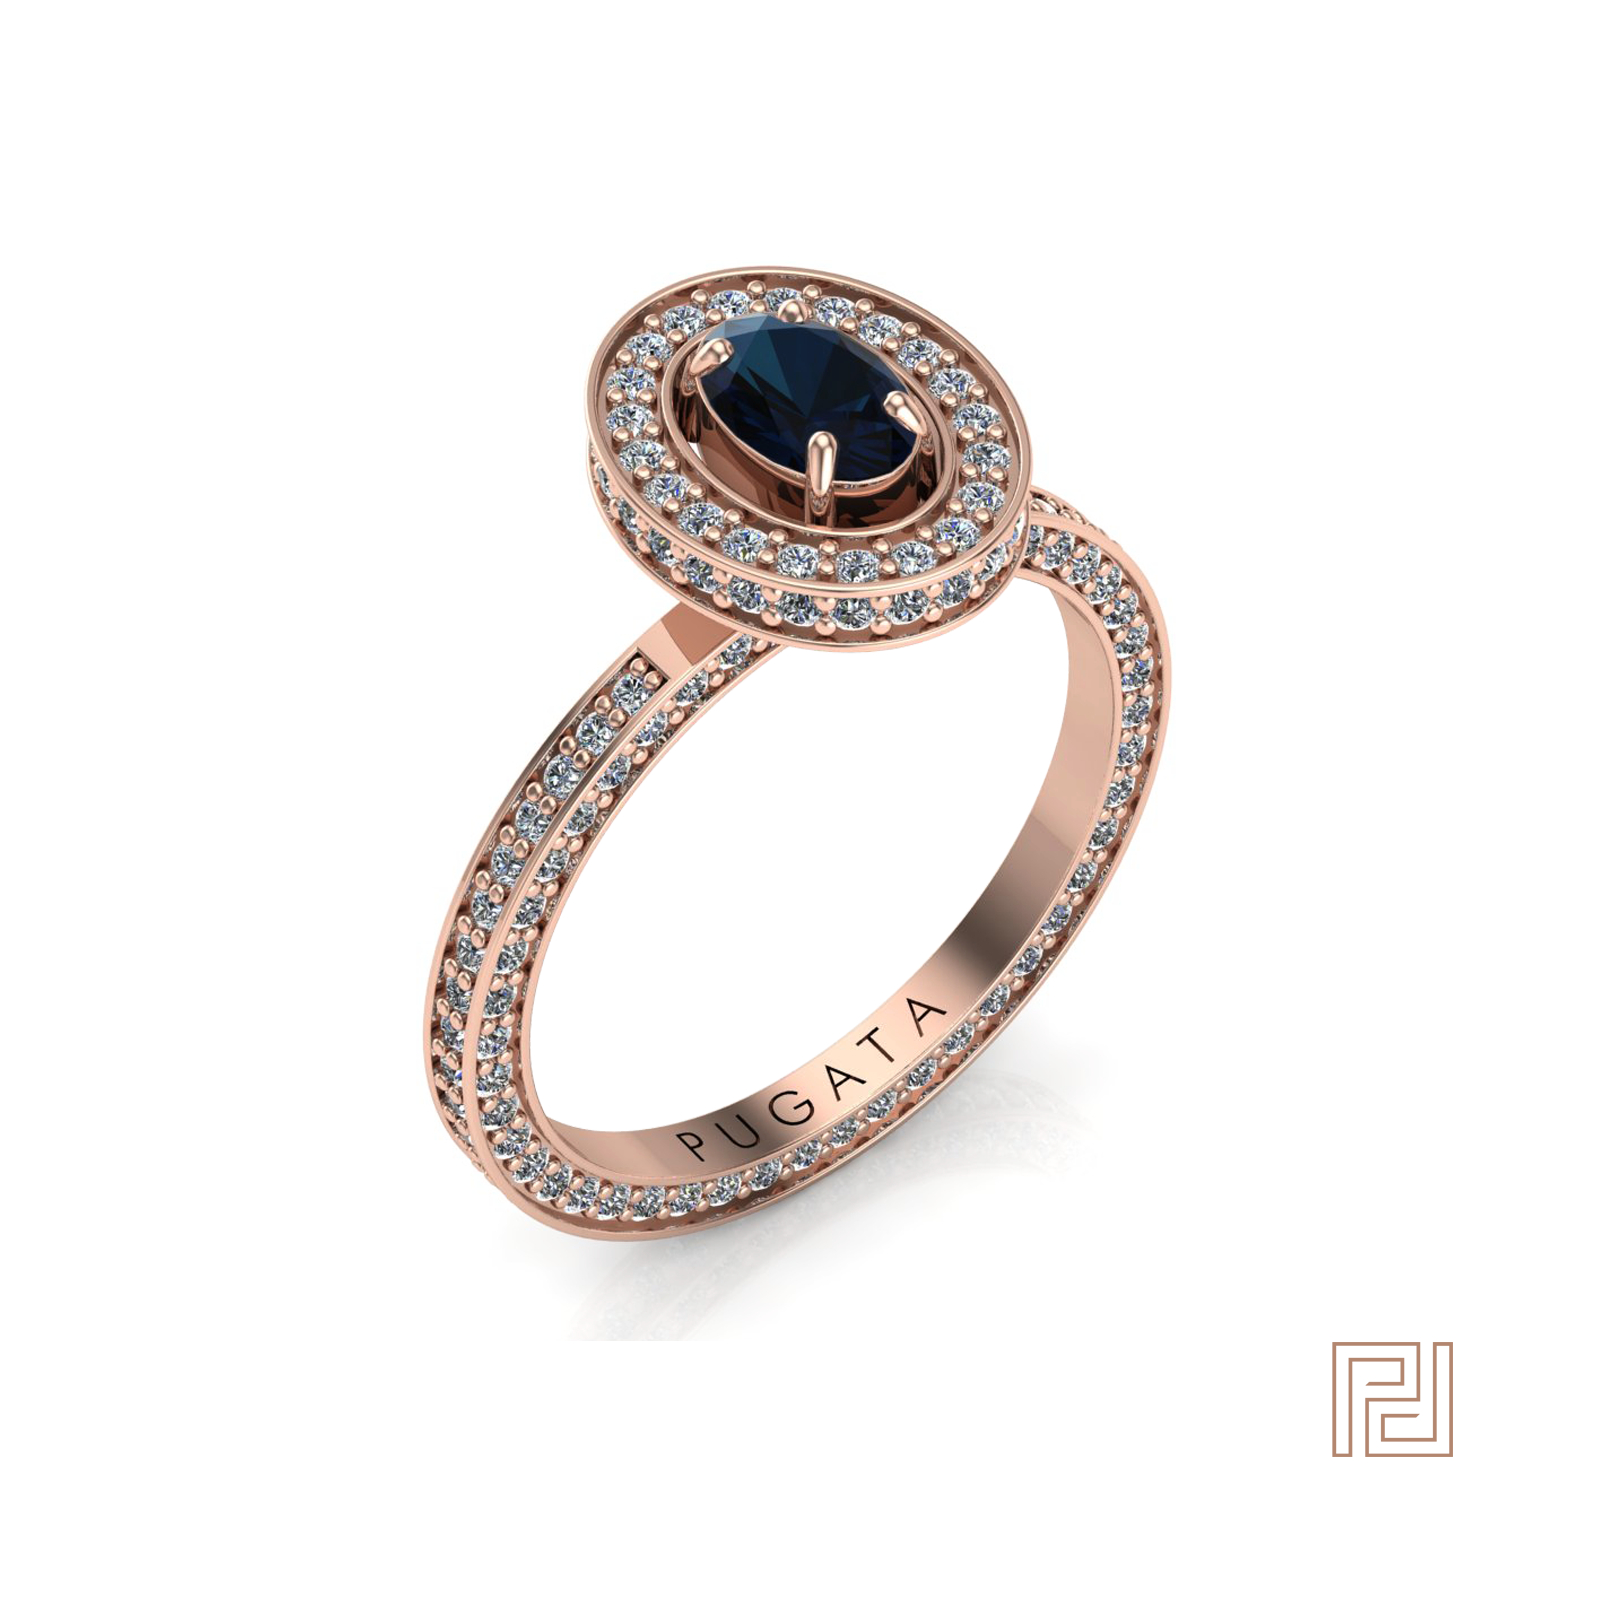 Rose Gold Blue Sapphire Stella Halo Ring Pertaining To Current Blue Square Sparkle Halo Rings (Gallery 8 of 25)